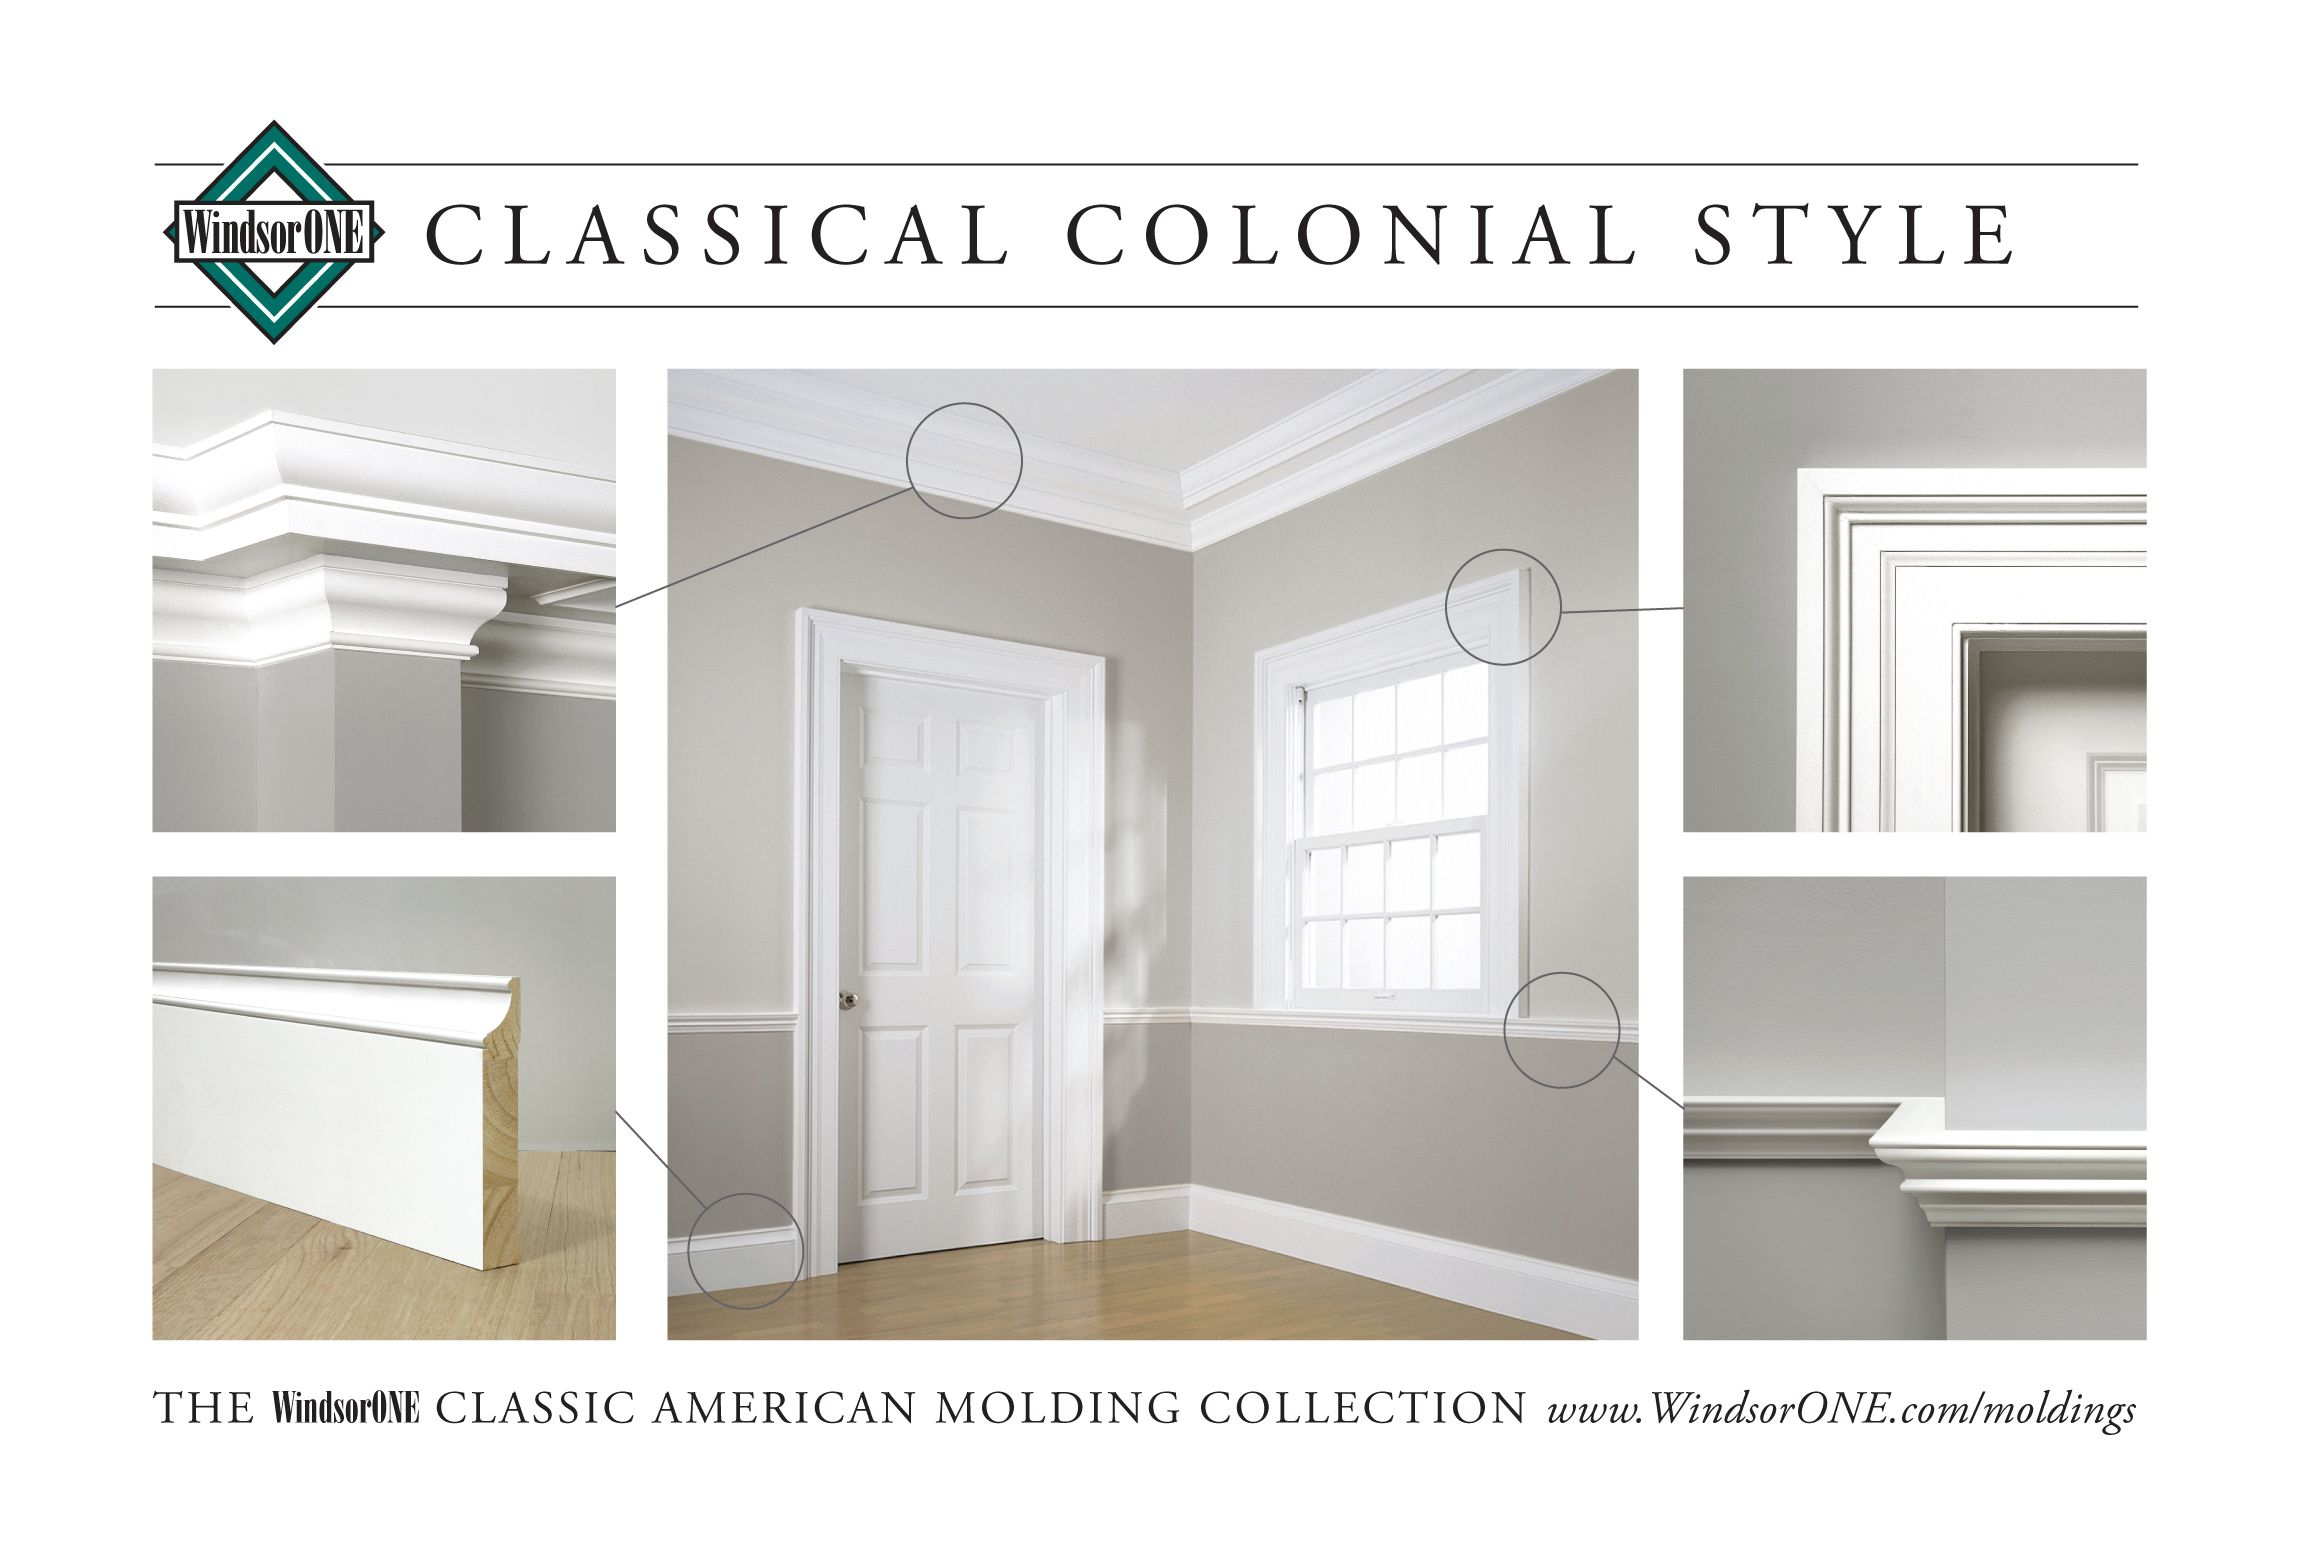 Classical Colonial Moldings 18th Century Style Windsorone Moldings And Trim Interior Window Trim Craftsman Interior